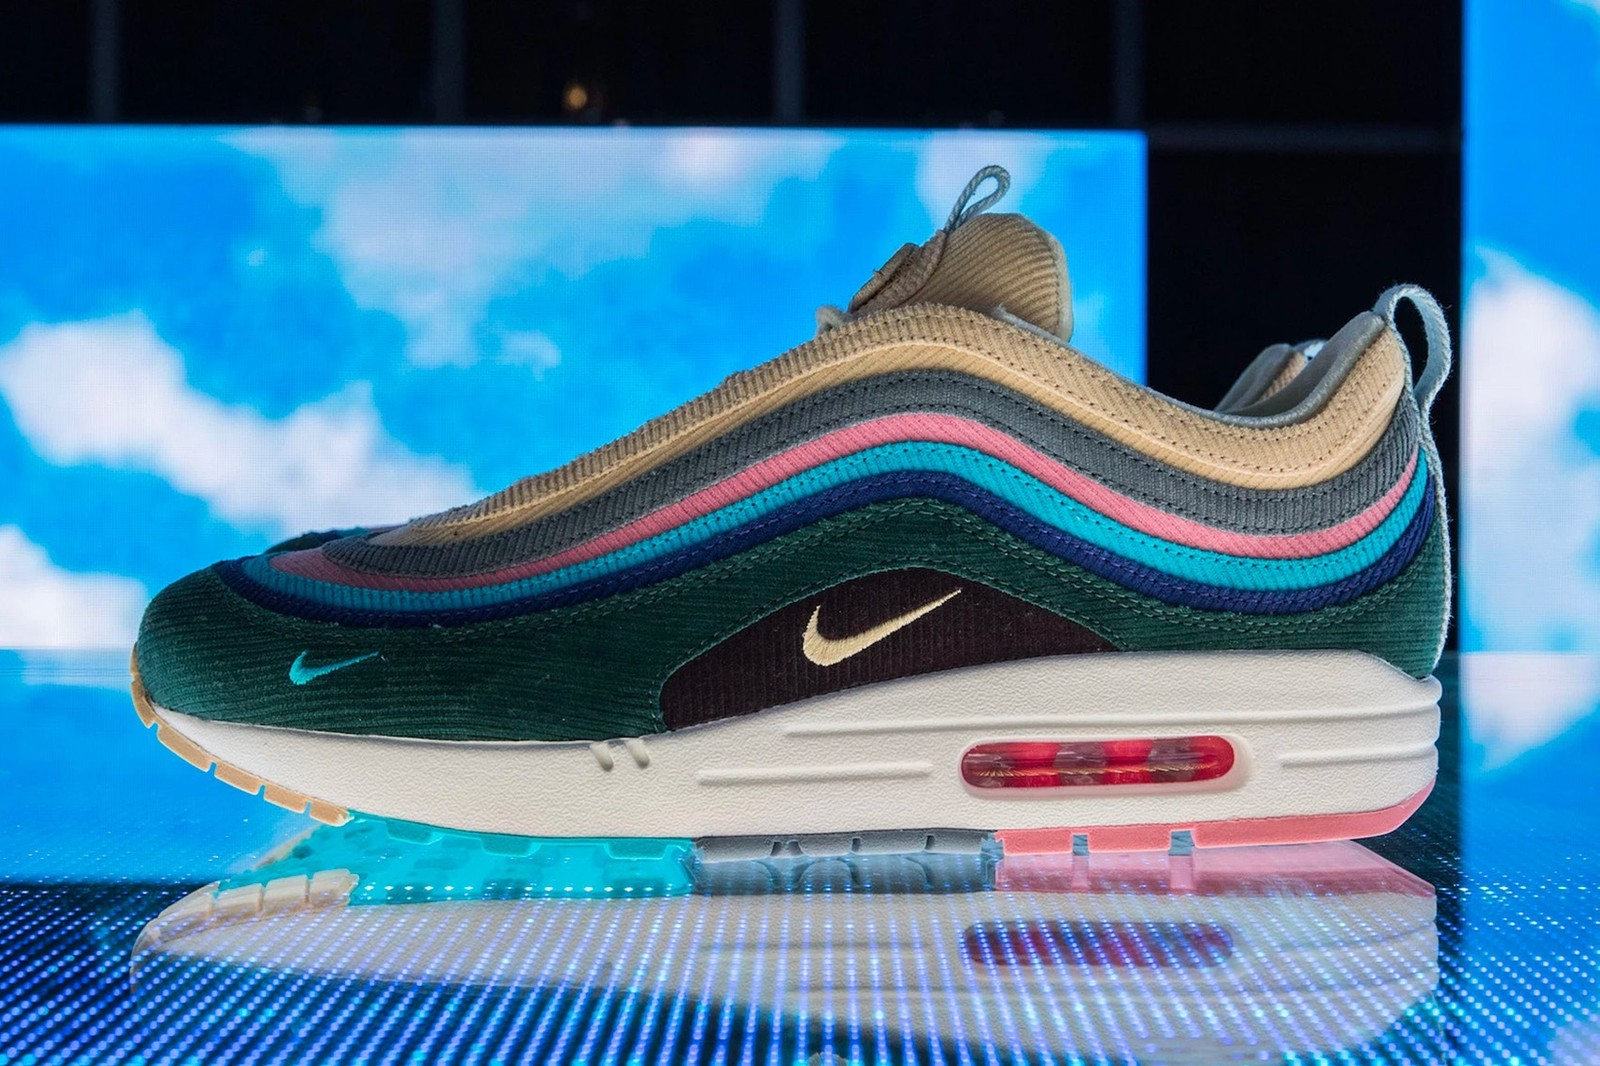 Sneakers Sorties Semaine Nike Air Max 1/97 Sean Wotherspoon Air Max Day 2018